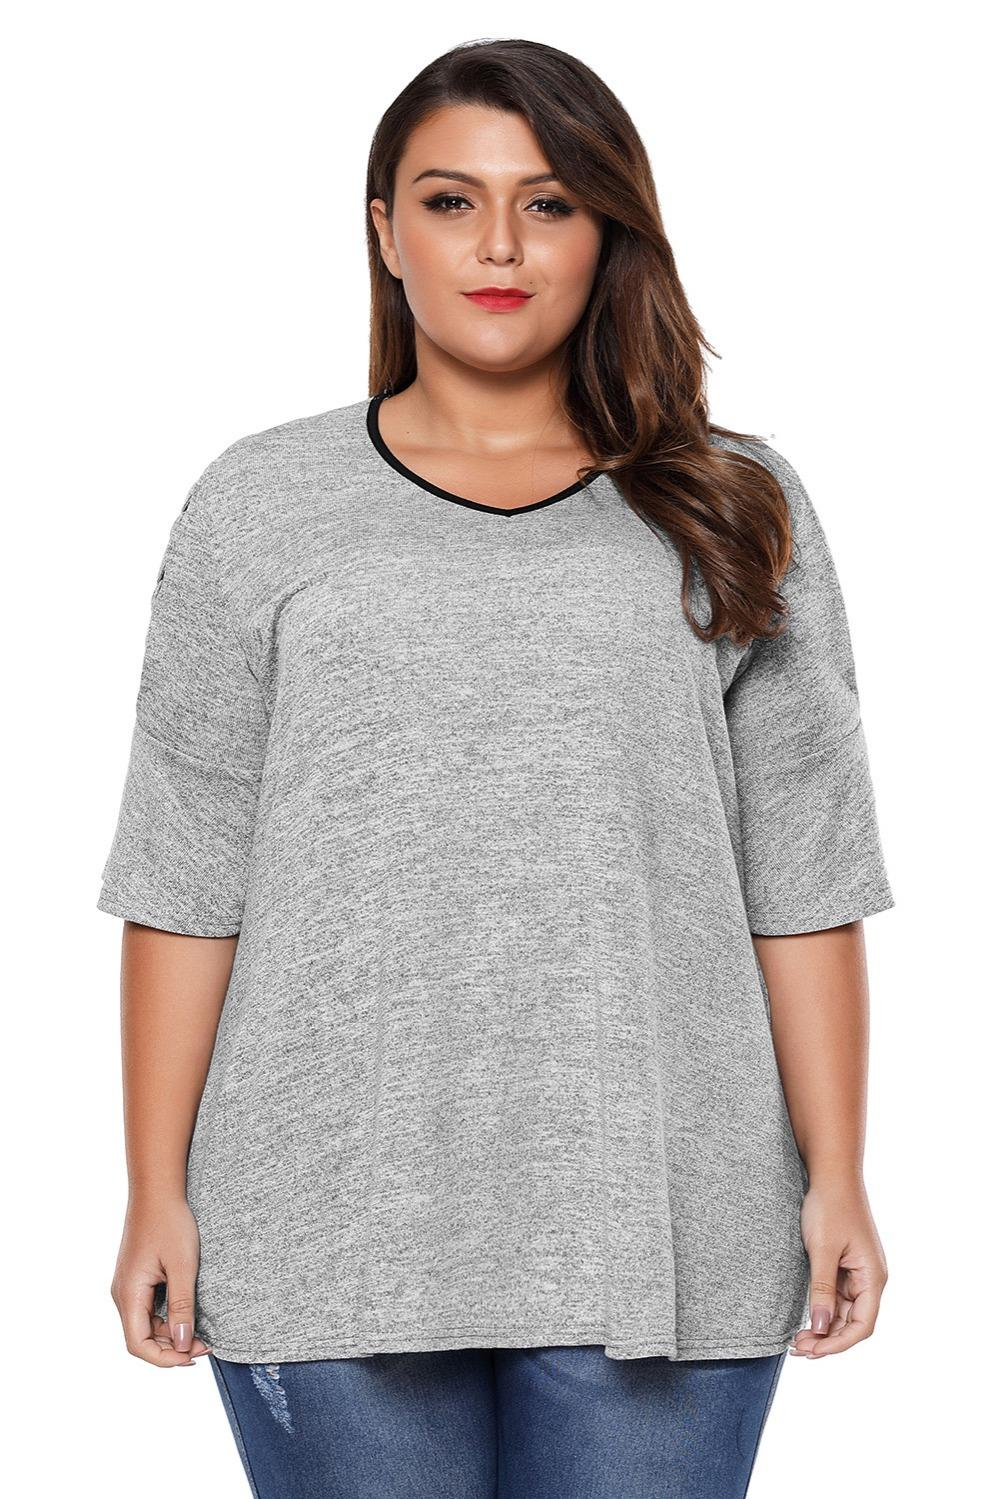 05b07bf38265ff Plus Size T Shirt Lace Up Cold Shoulder Top Casual Fashion Summer O Neck  Short Sleeve Ladies T Shirt Grey 2018 LC25086 Top T Shirt Sites Cool T  Shirts For ...